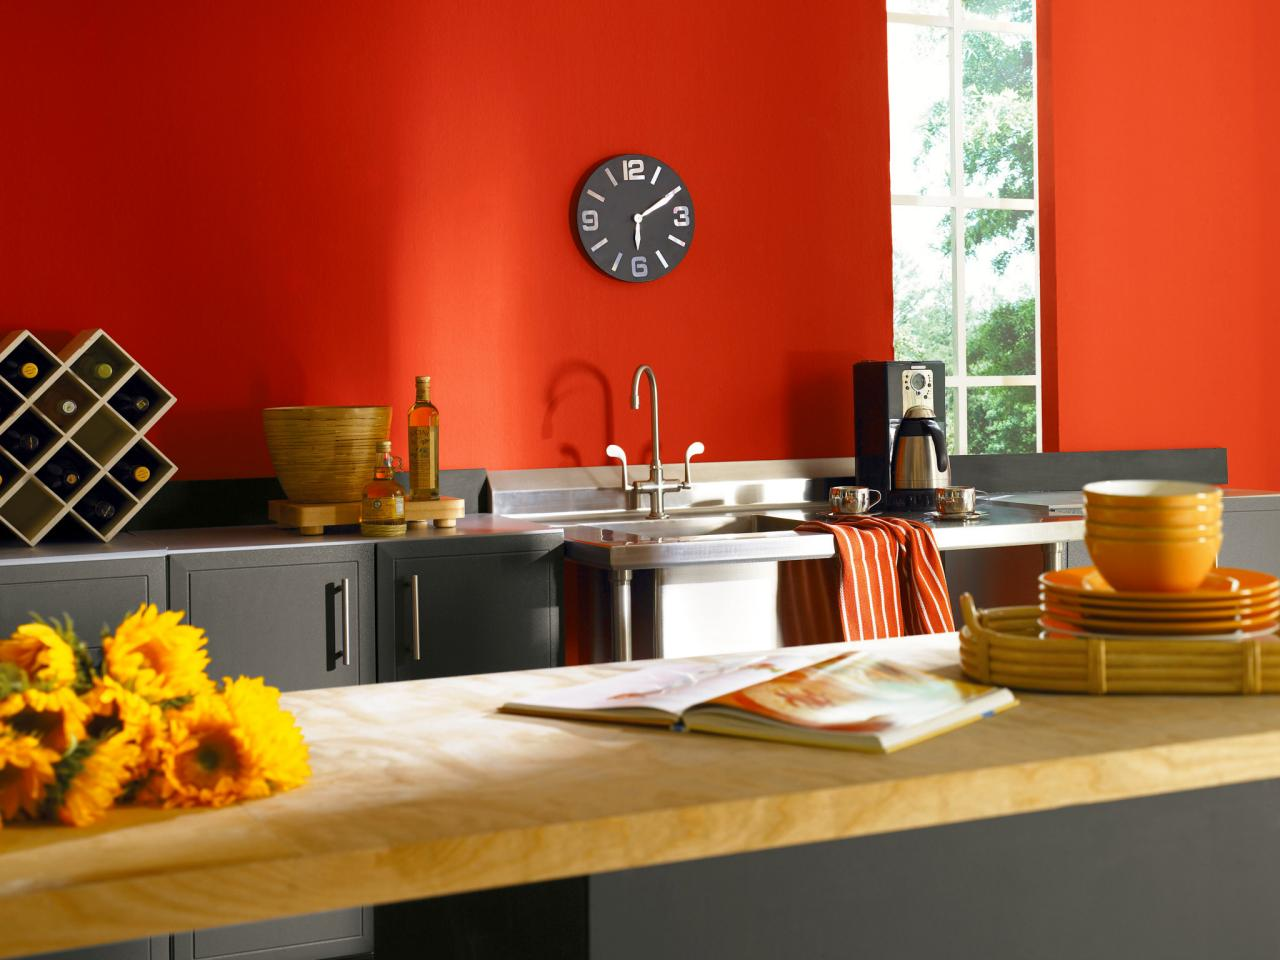 Dark Red Hue For Kitchen Wall Black Clock In Minimalist Model Grey Cabinets